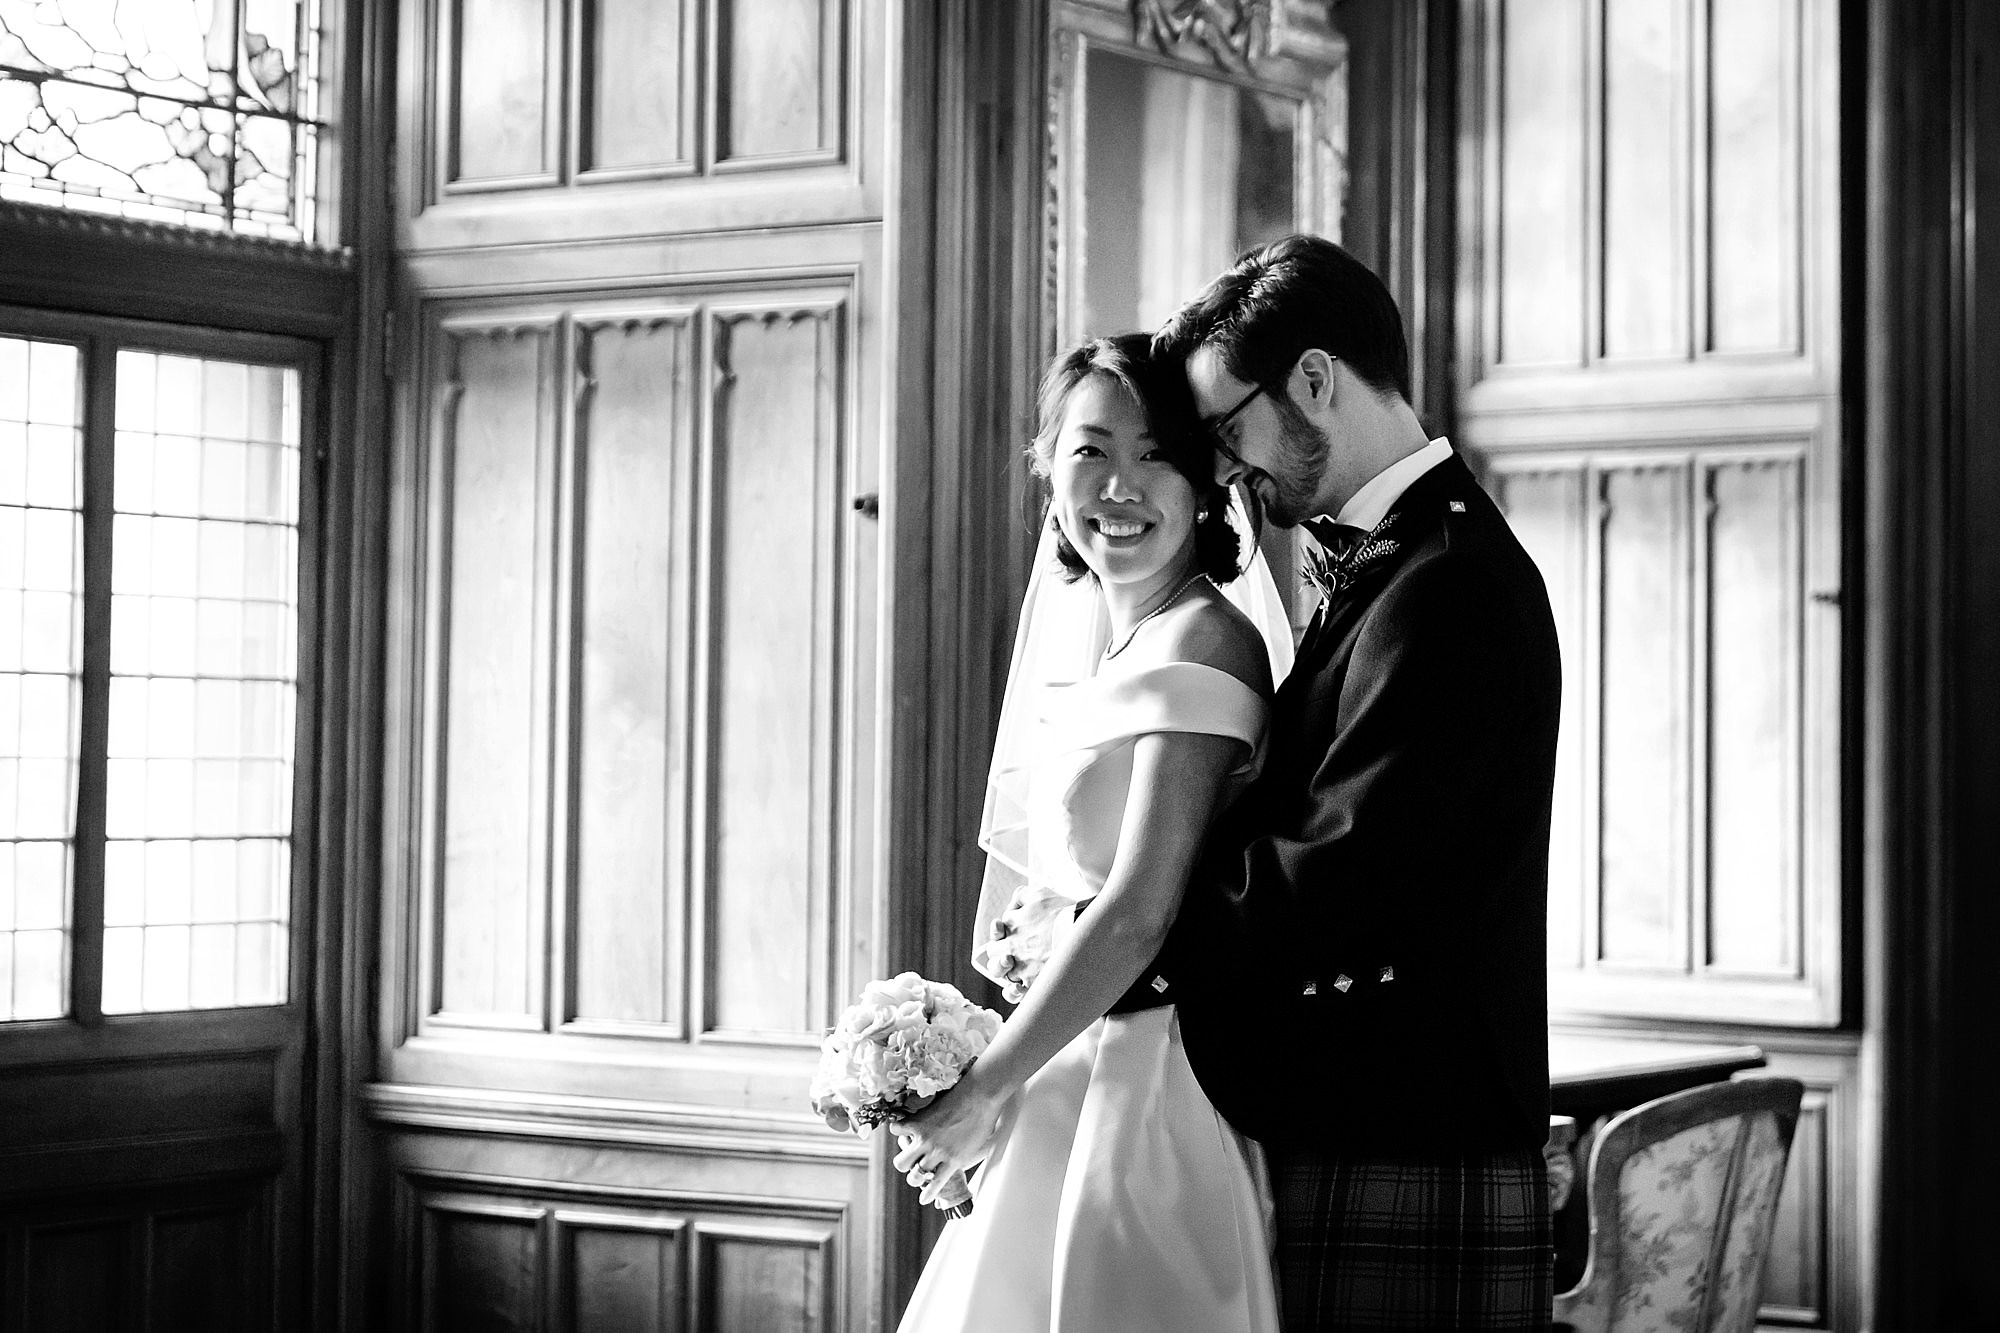 intimate wedding scotland bride and groom by a window at mount stuart